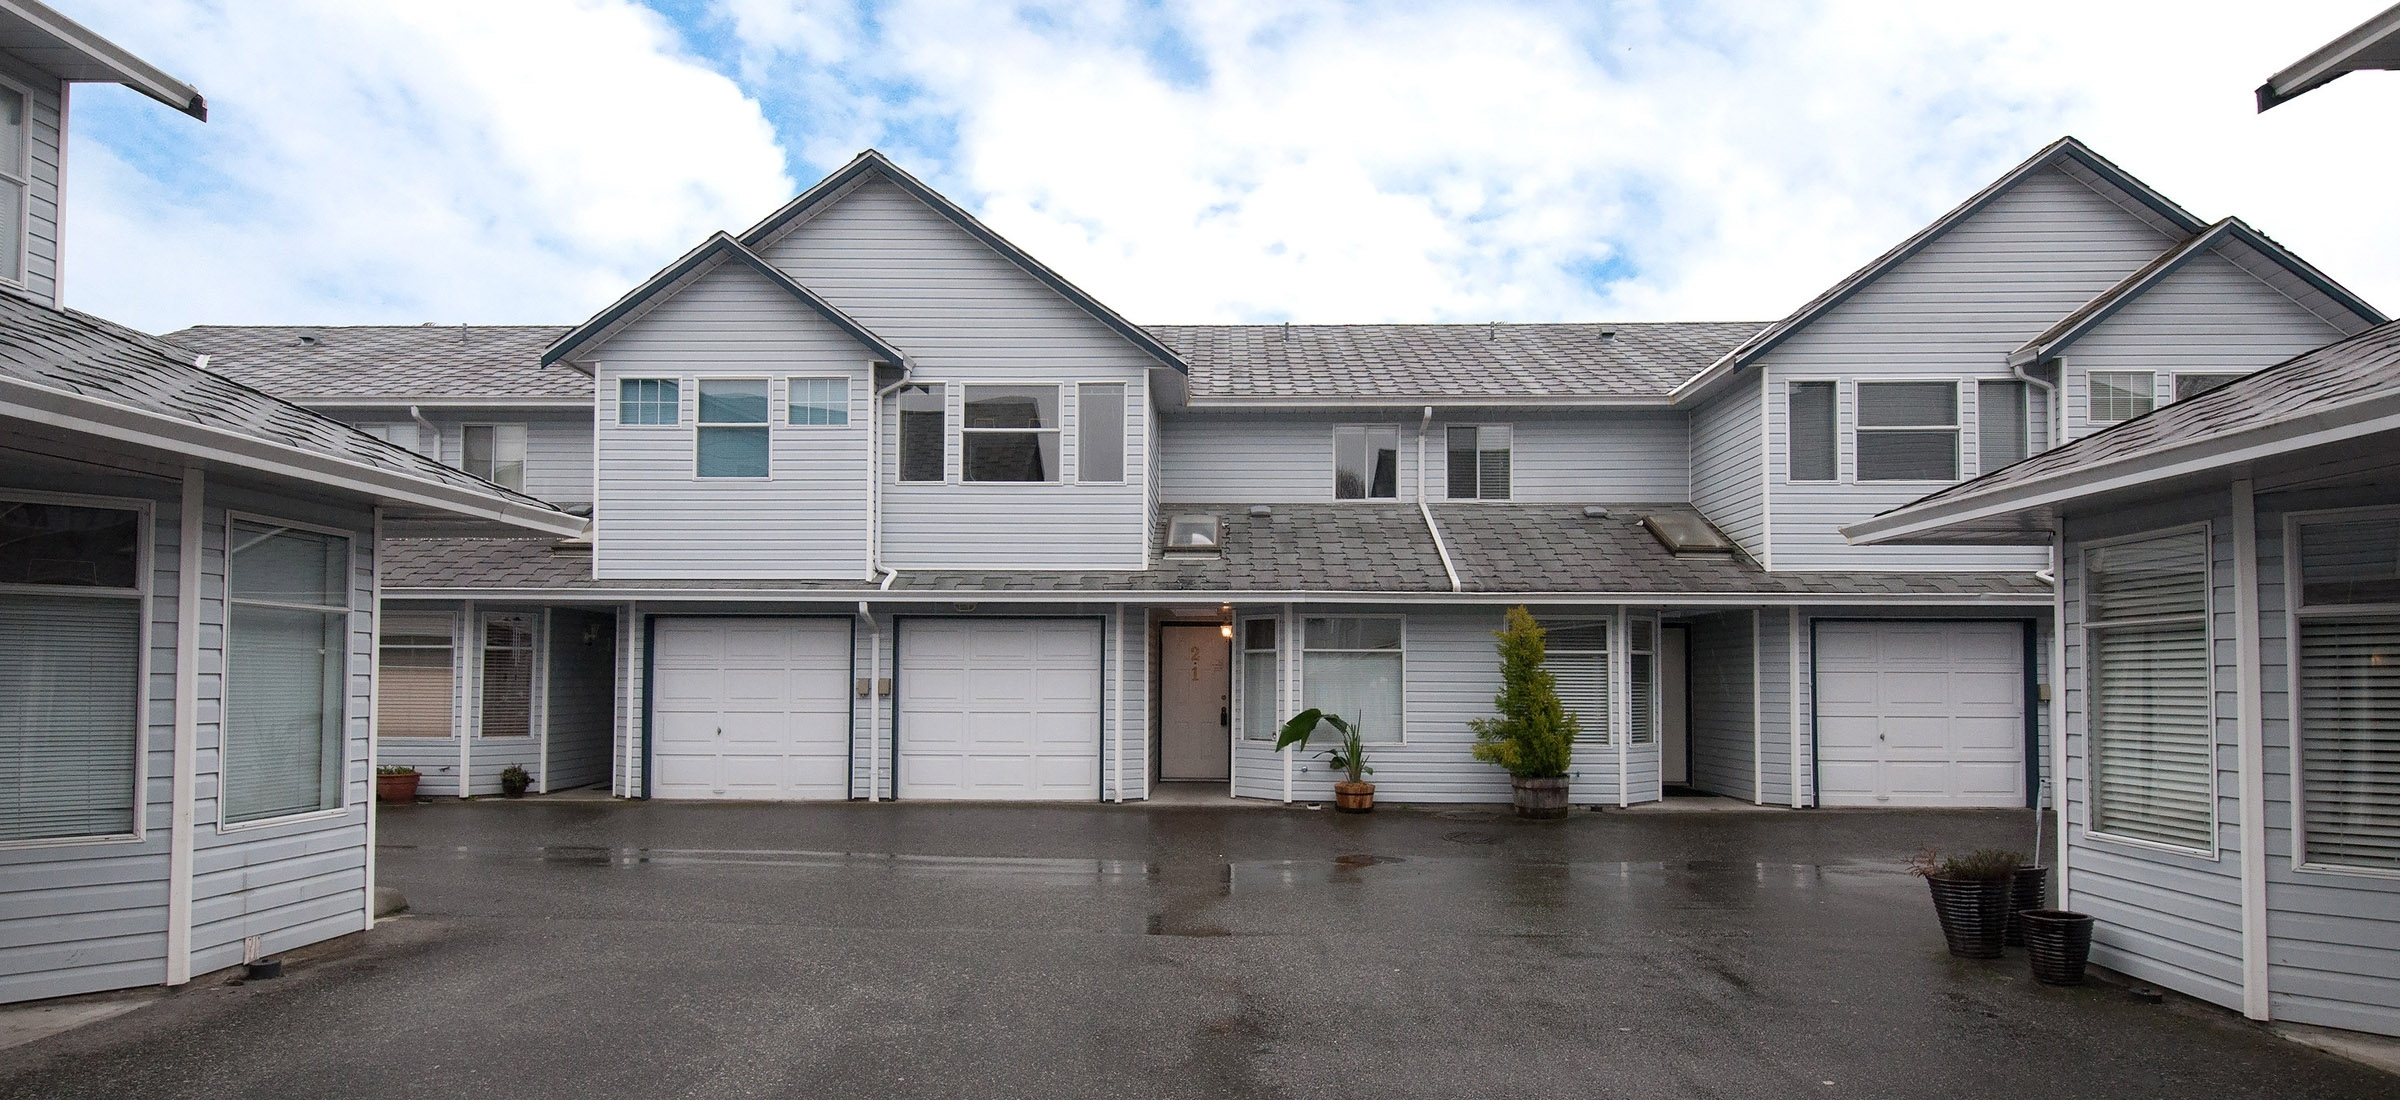 21 - 20630 118th Ave, Southwest Maple Ridge, Maple Ridge